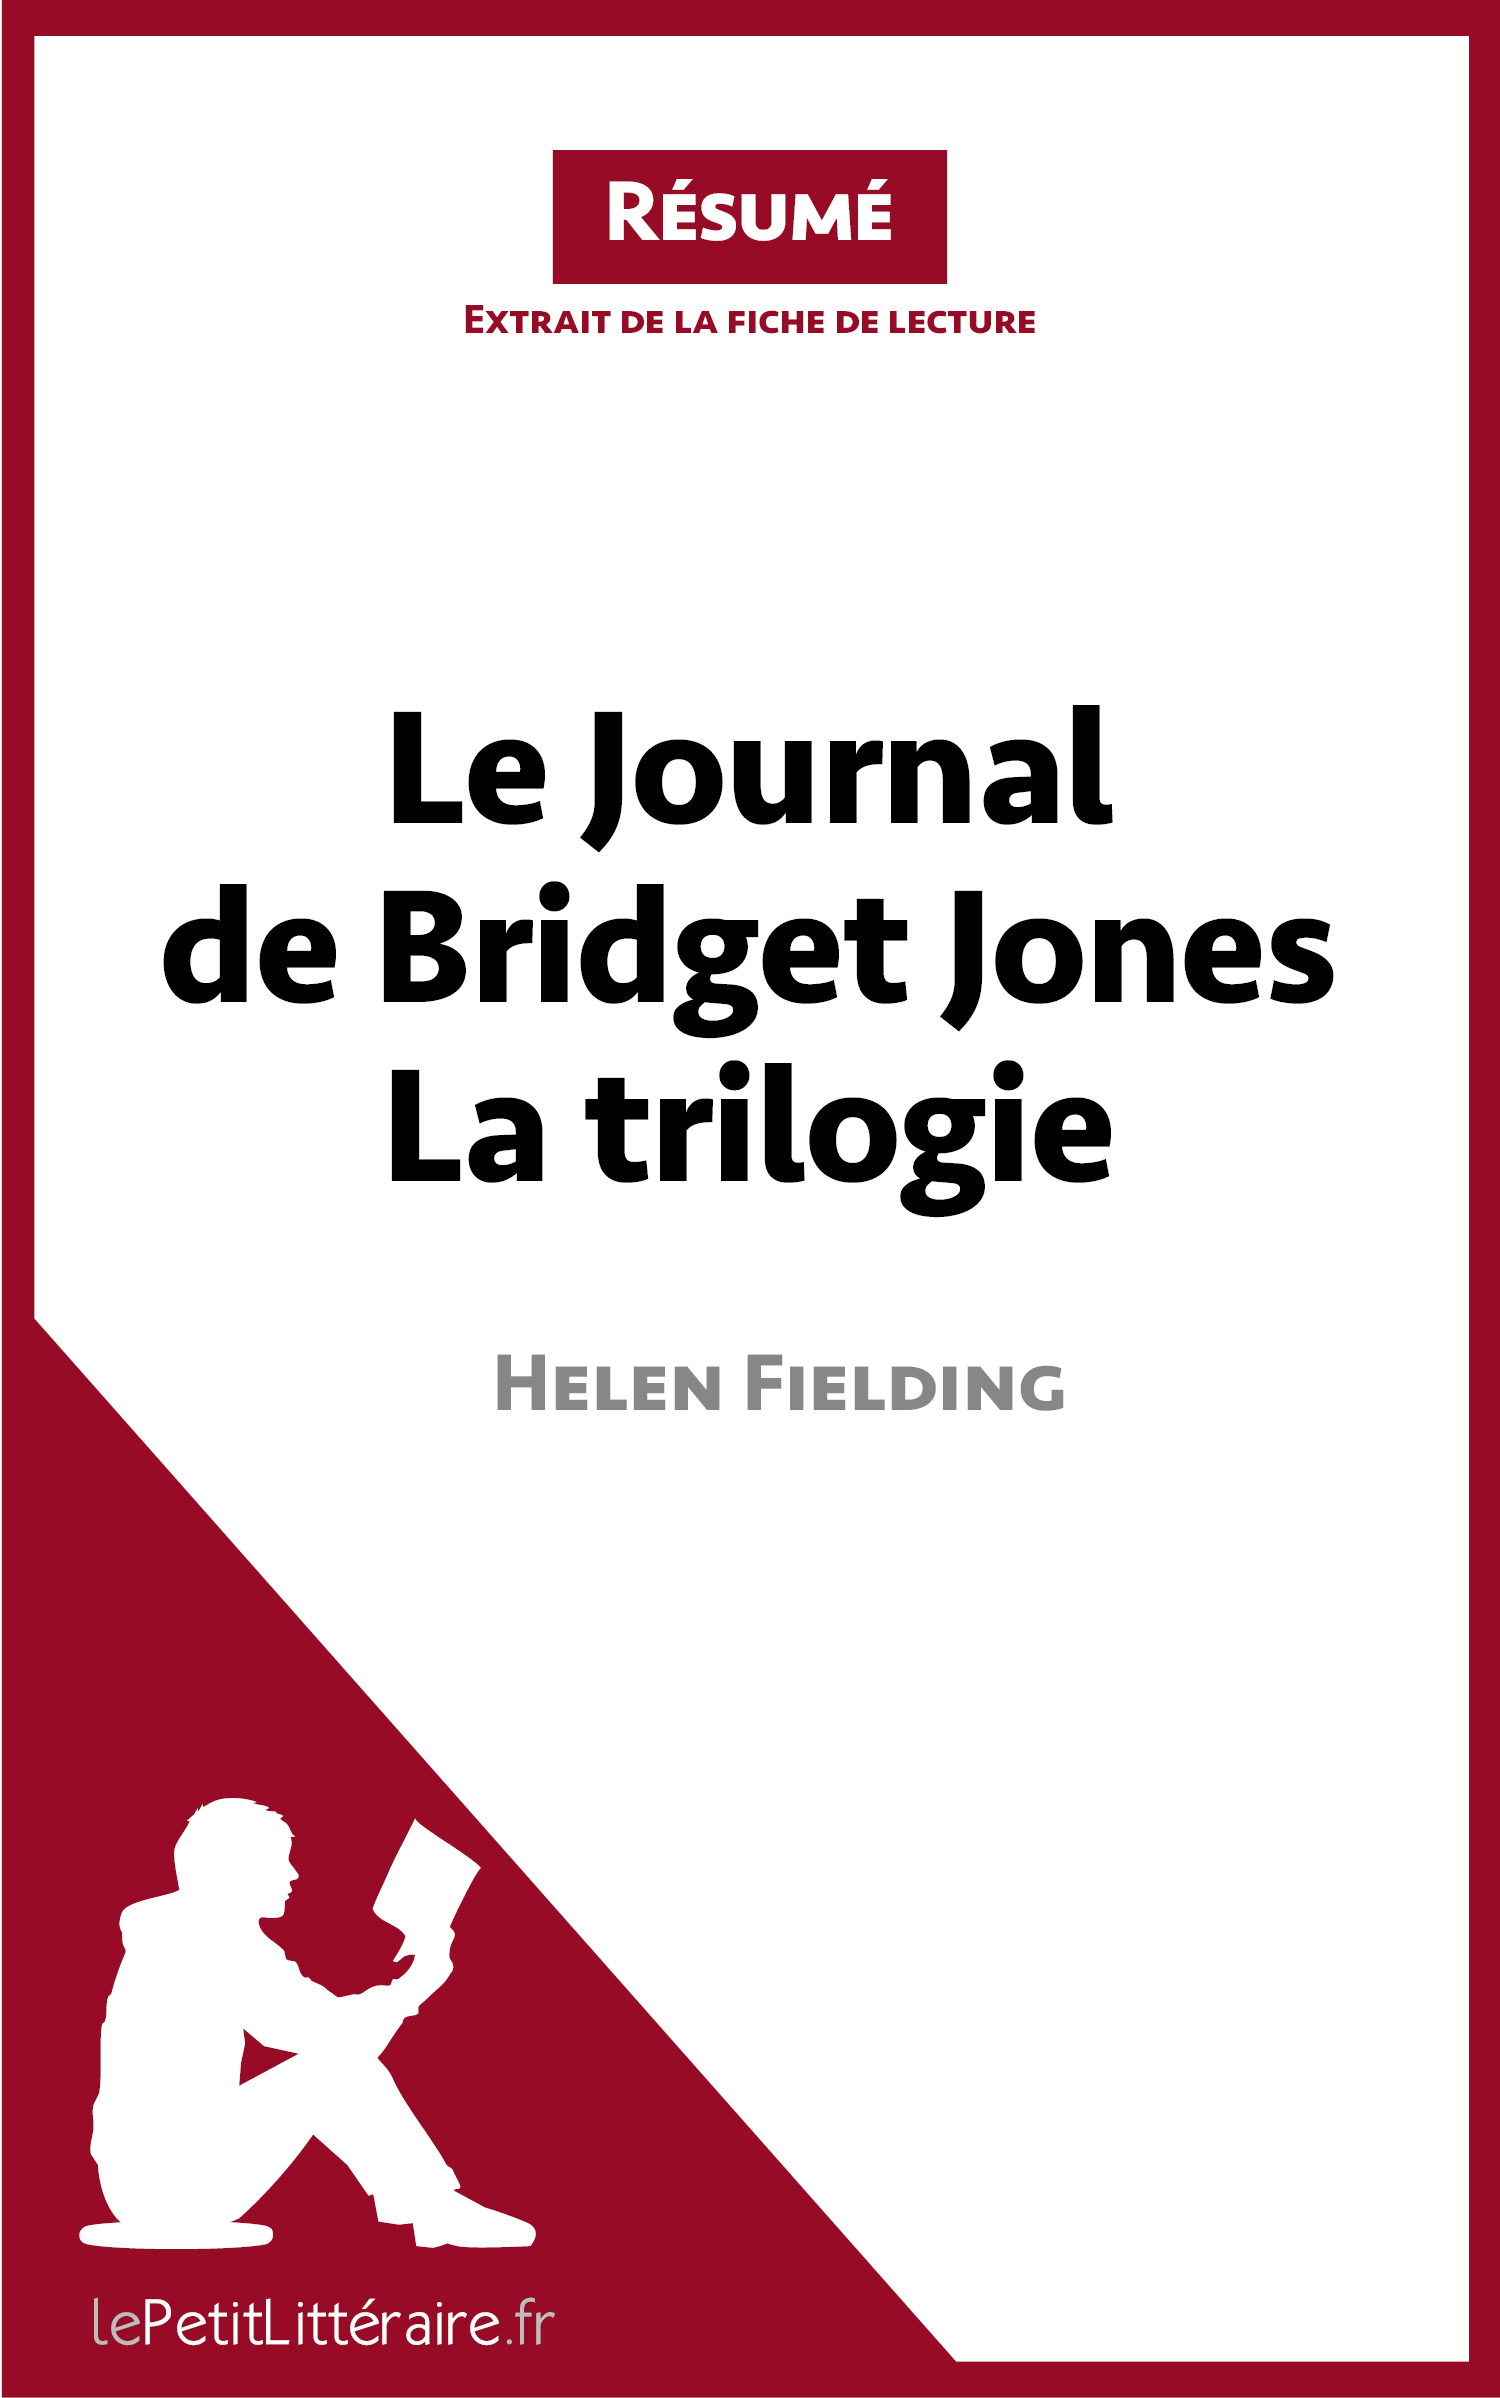 Le Journal de Bridget Jones - La trilogie